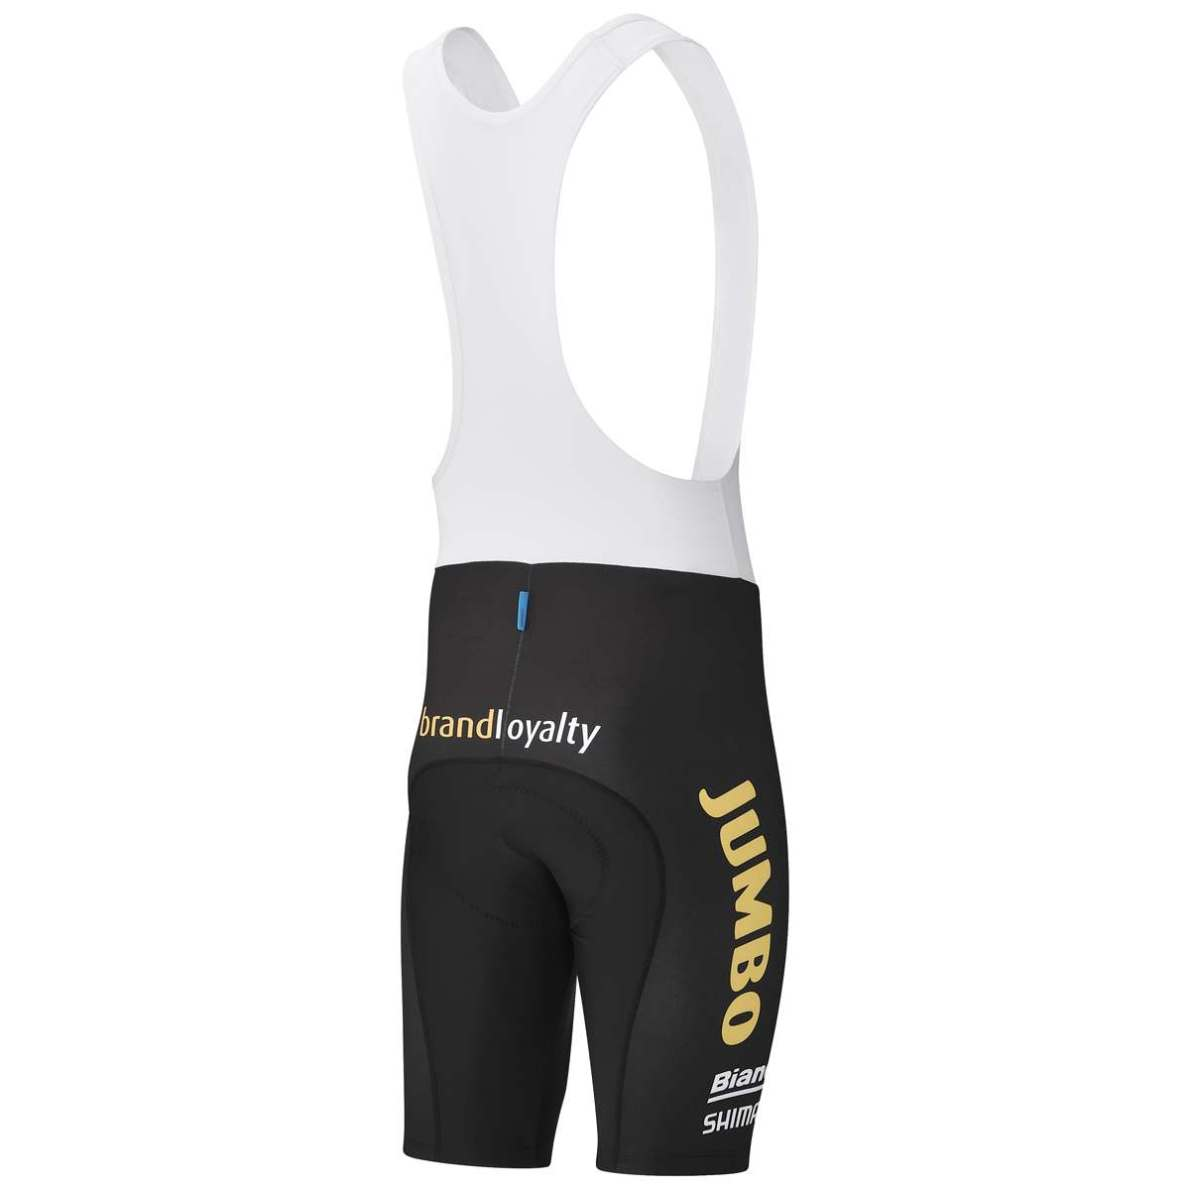 Team LottoNL-Jumbo Bibshort Re